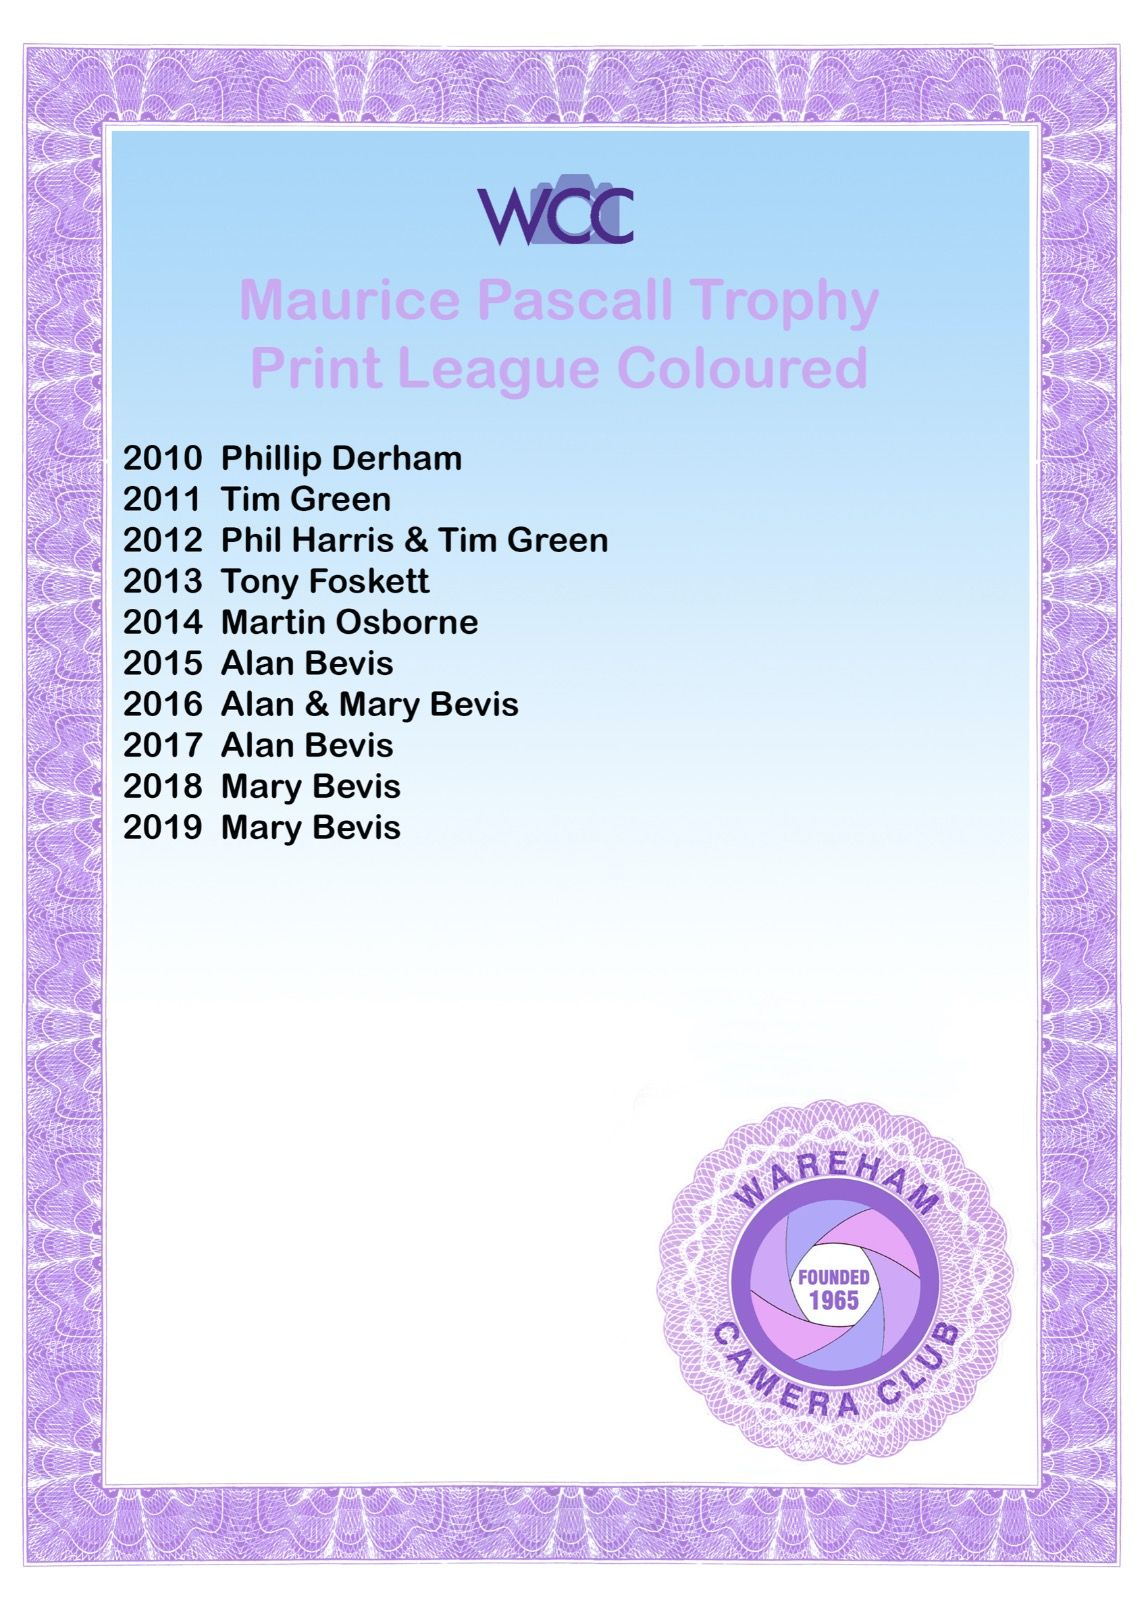 Maurice Pascall Trophy